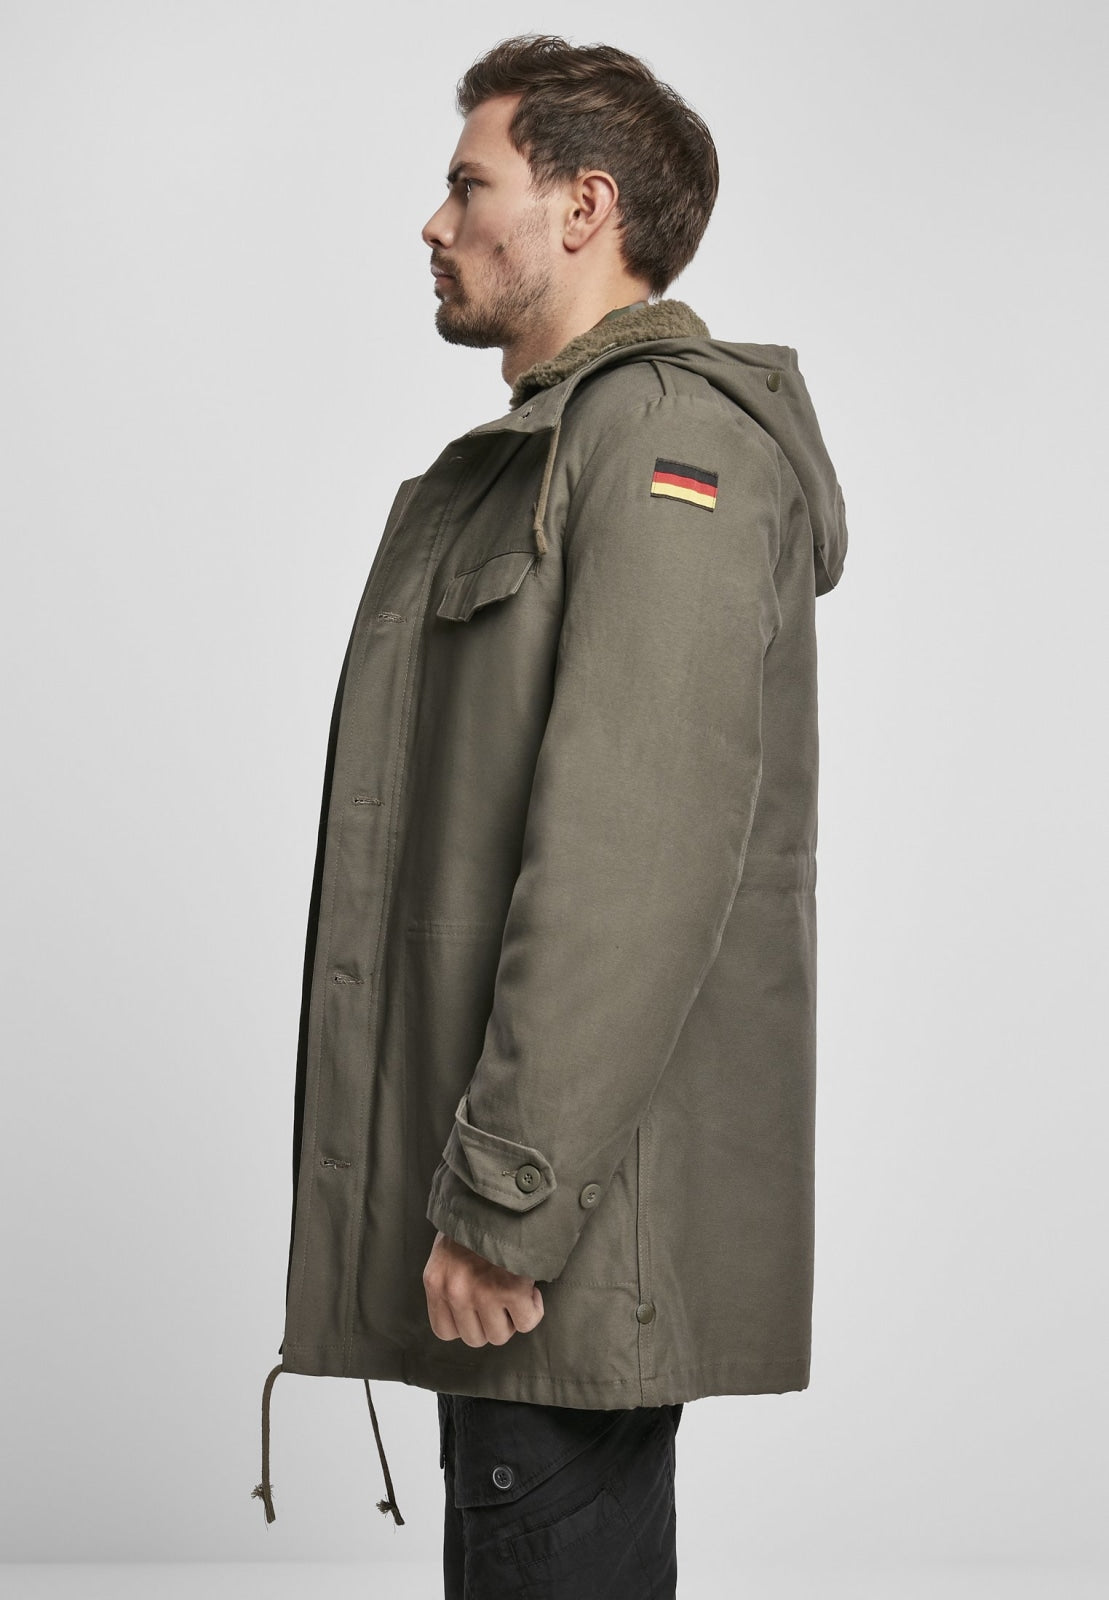 Bw Military Parka German Flag Olive / s Jacket Heavy Brandit